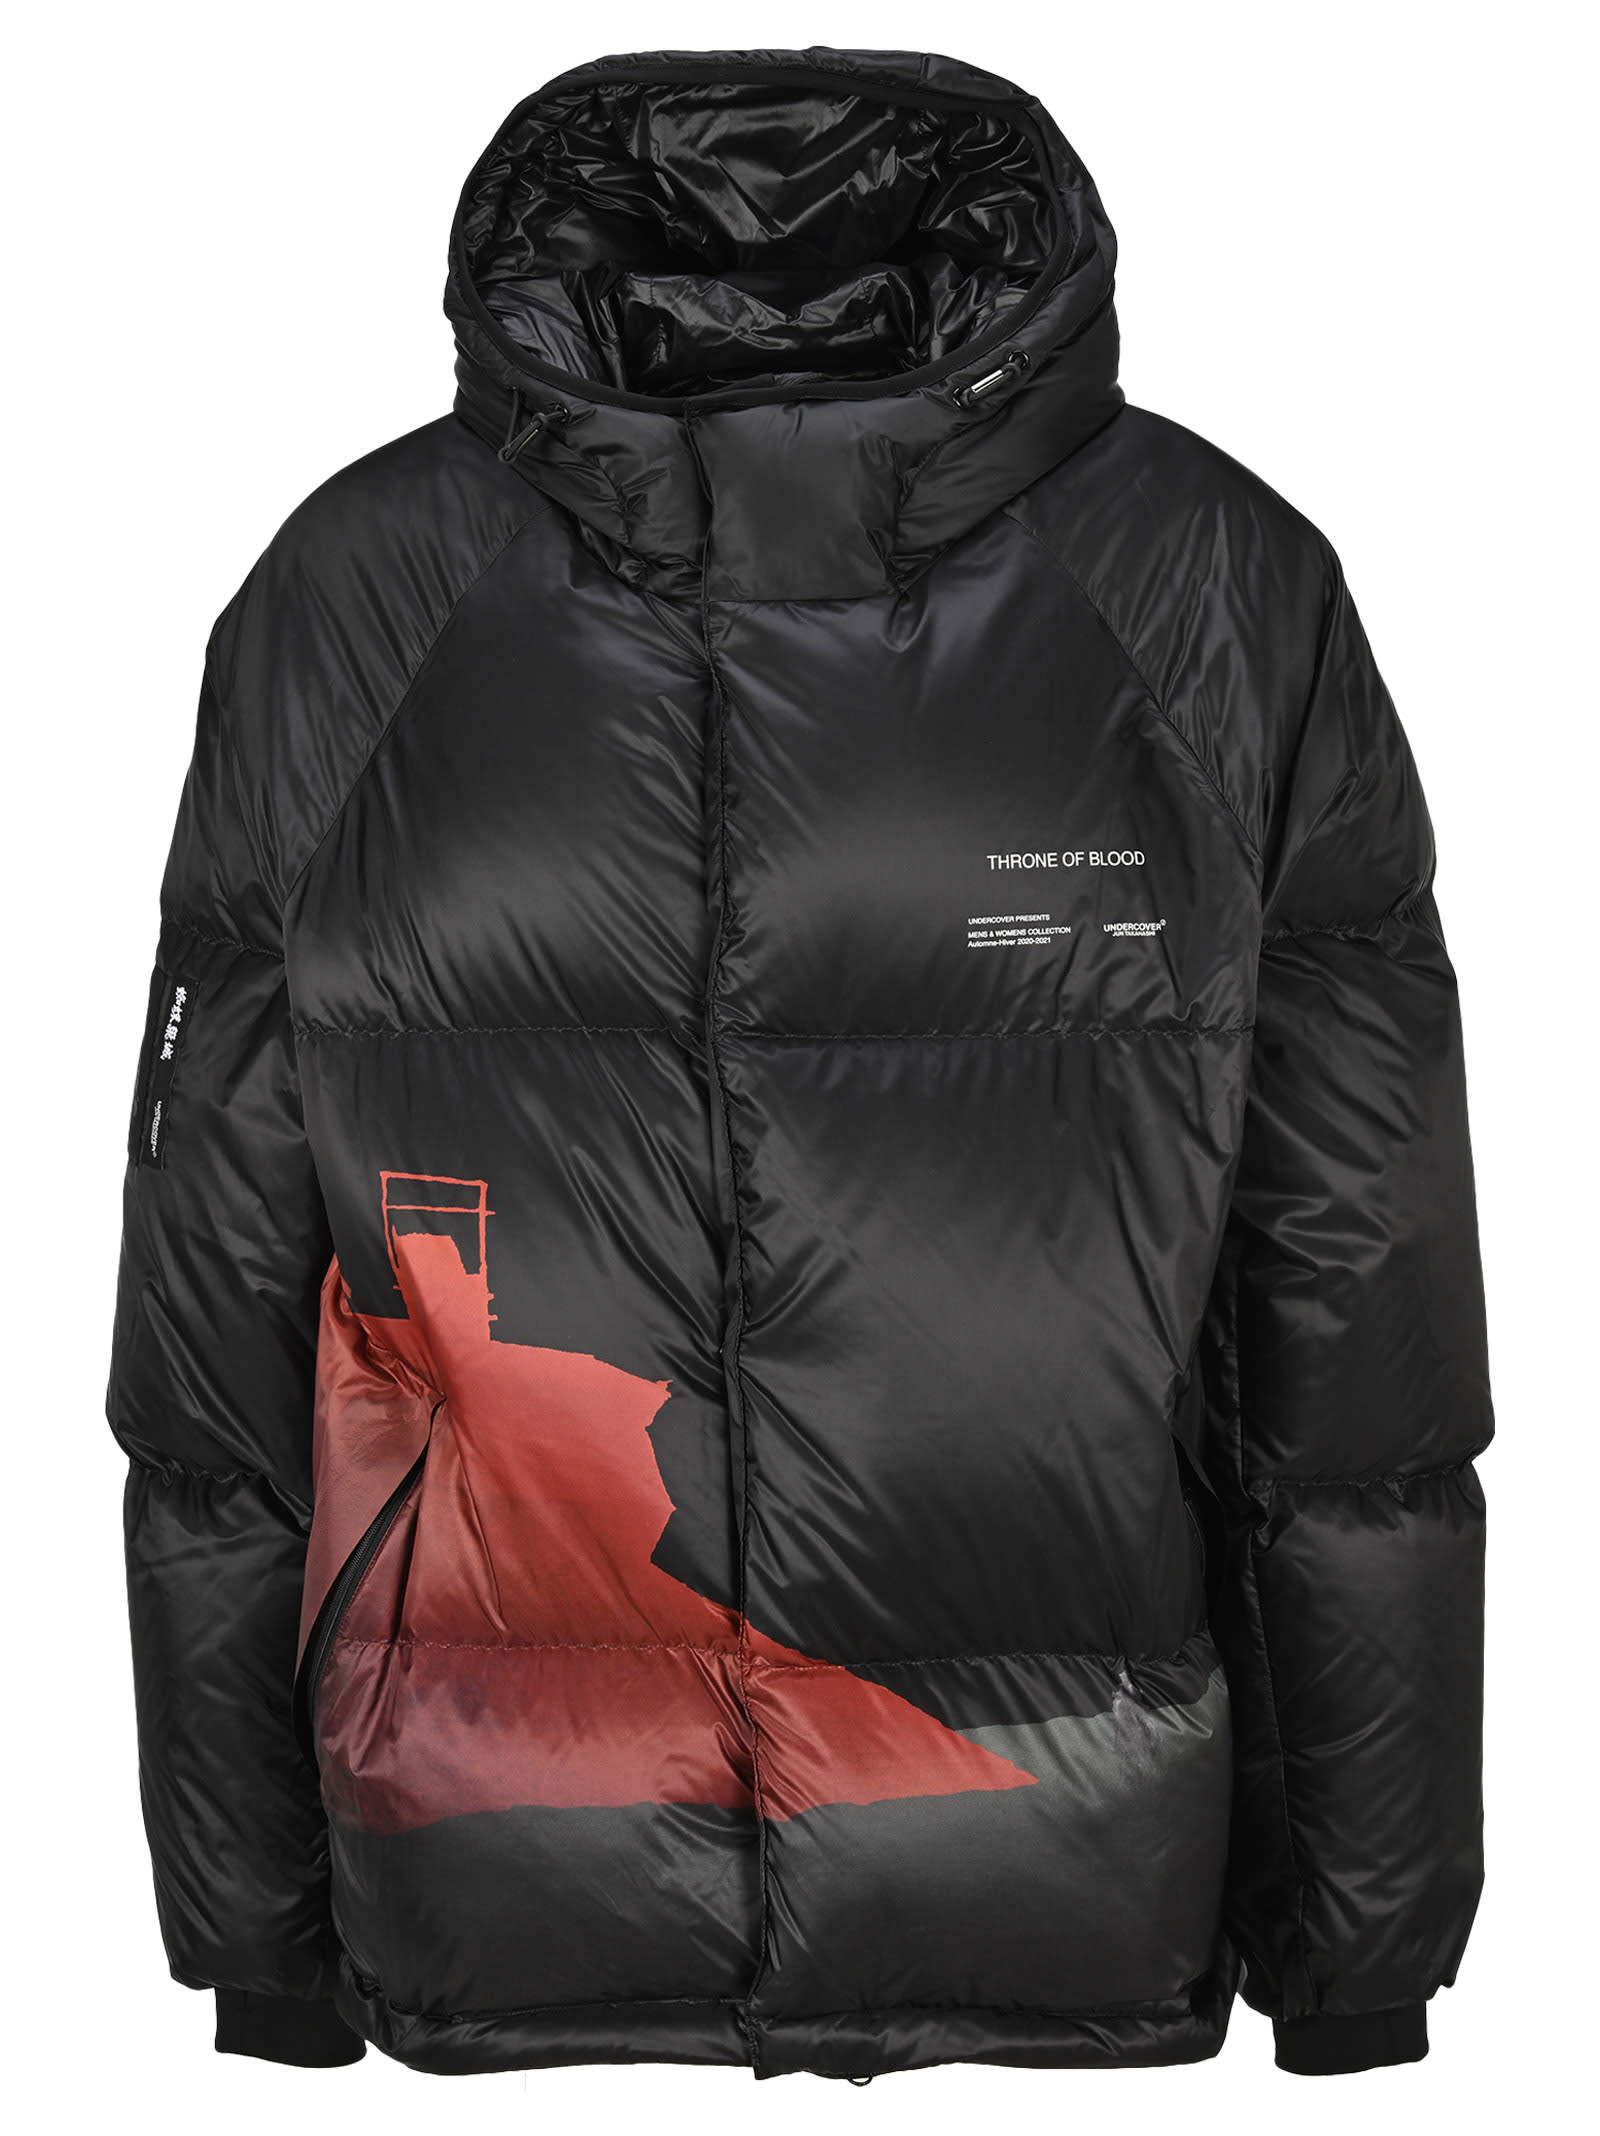 Undercover UNDERCOVER THRONE OF BLOOD DOWN JACKET